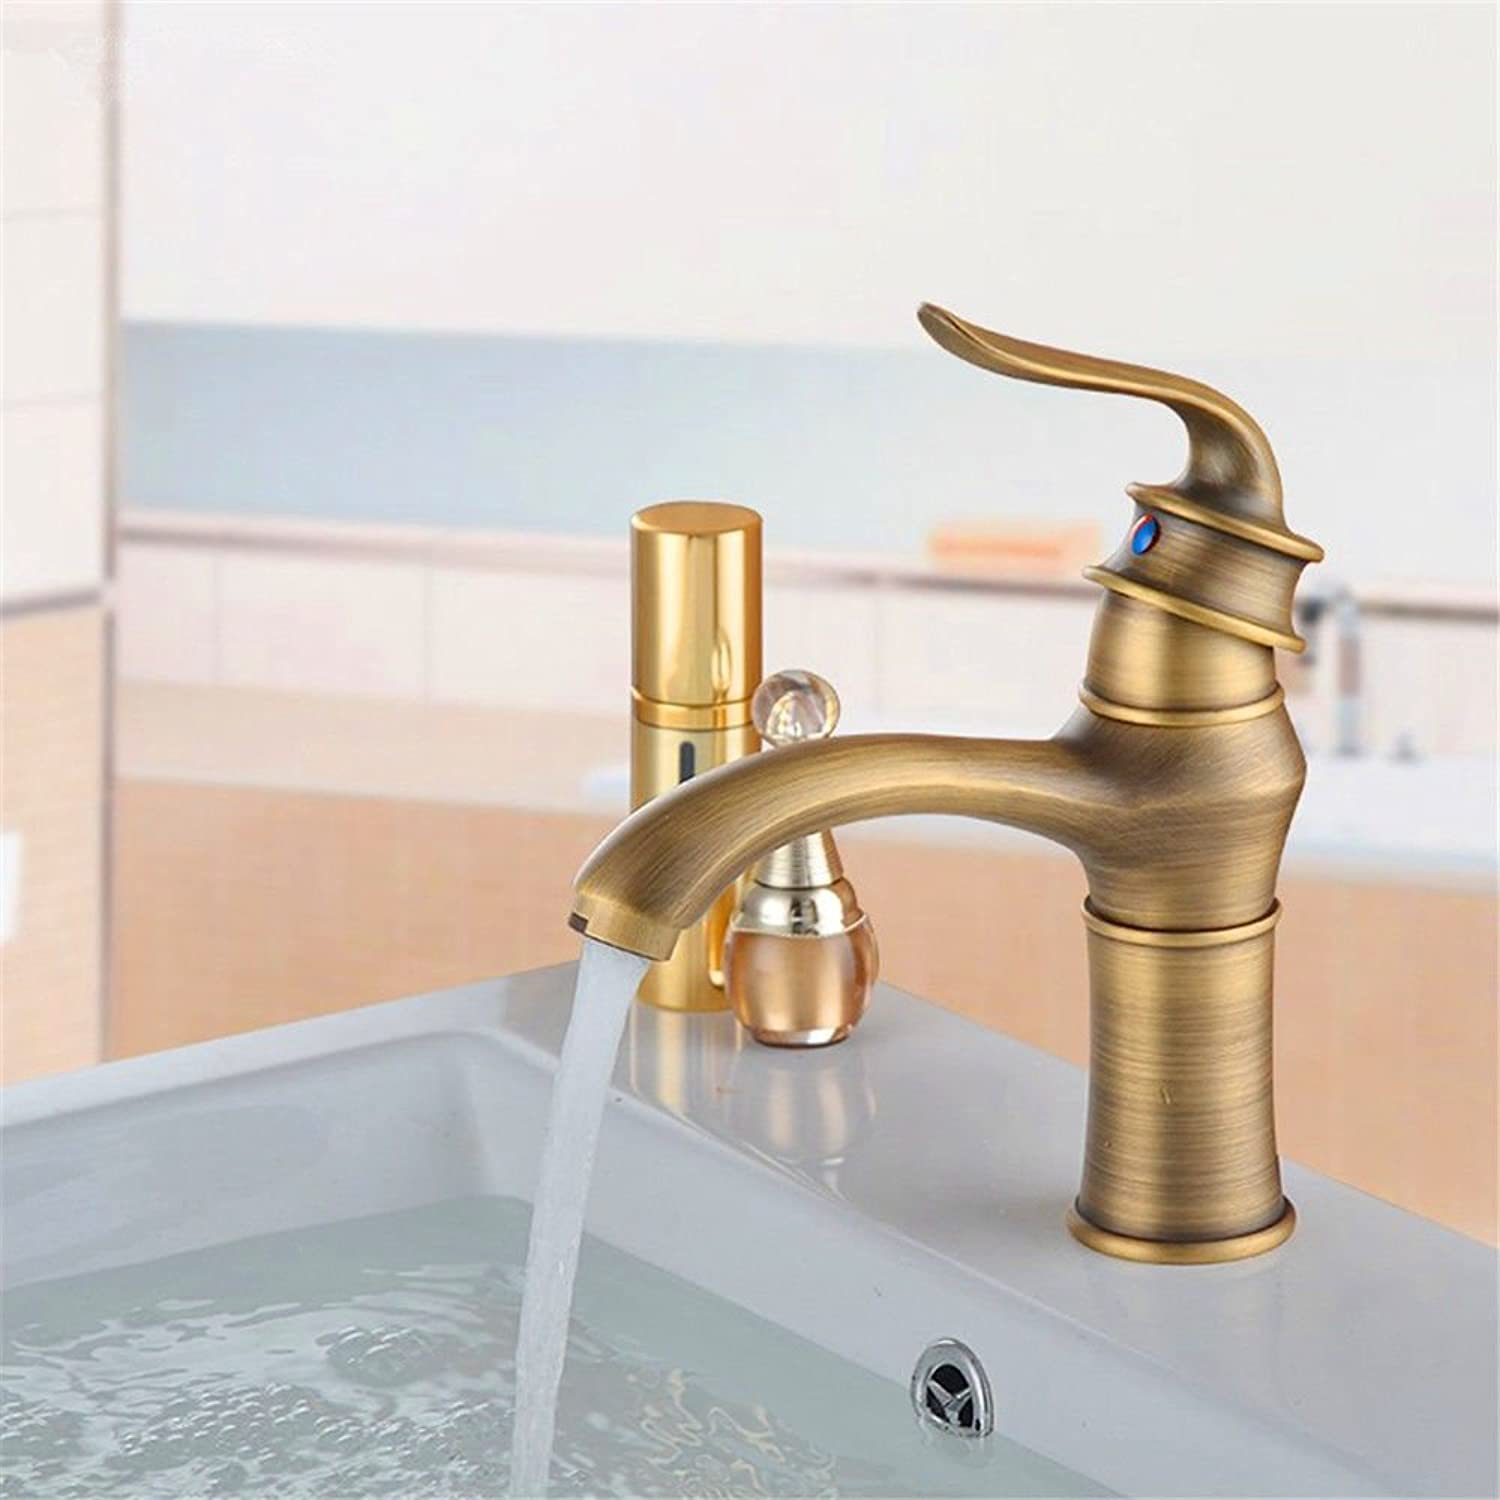 Lpophy Bathroom Sink Mixer Taps Faucet Bath Waterfall Cold and Hot Water Tap for Washroom Bathroom and Kitchen Hot and Cold Copper Retro